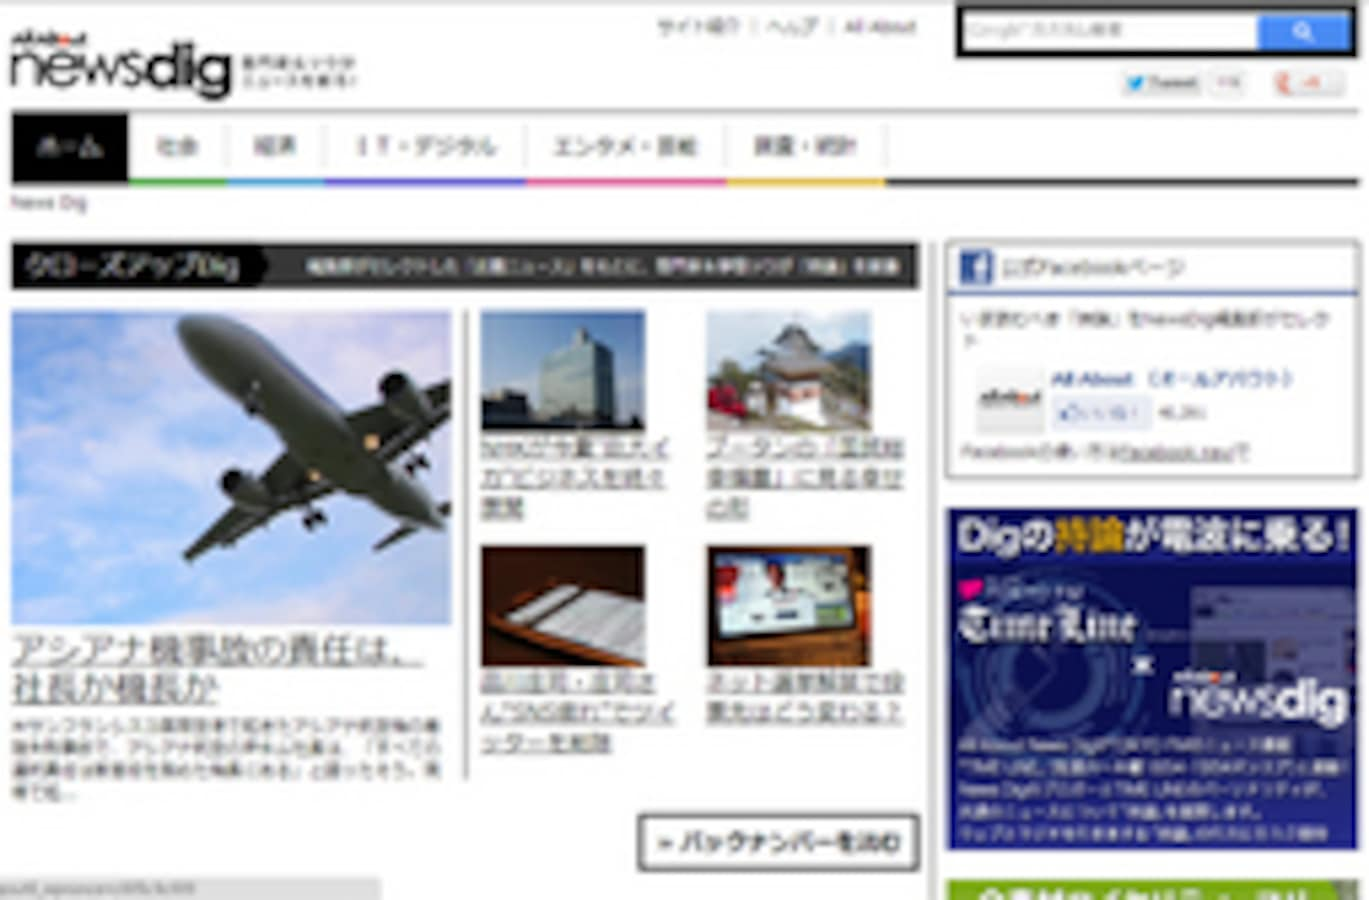 News Dig持論 2013年上半期ベスト10|All About(オールアバウト)